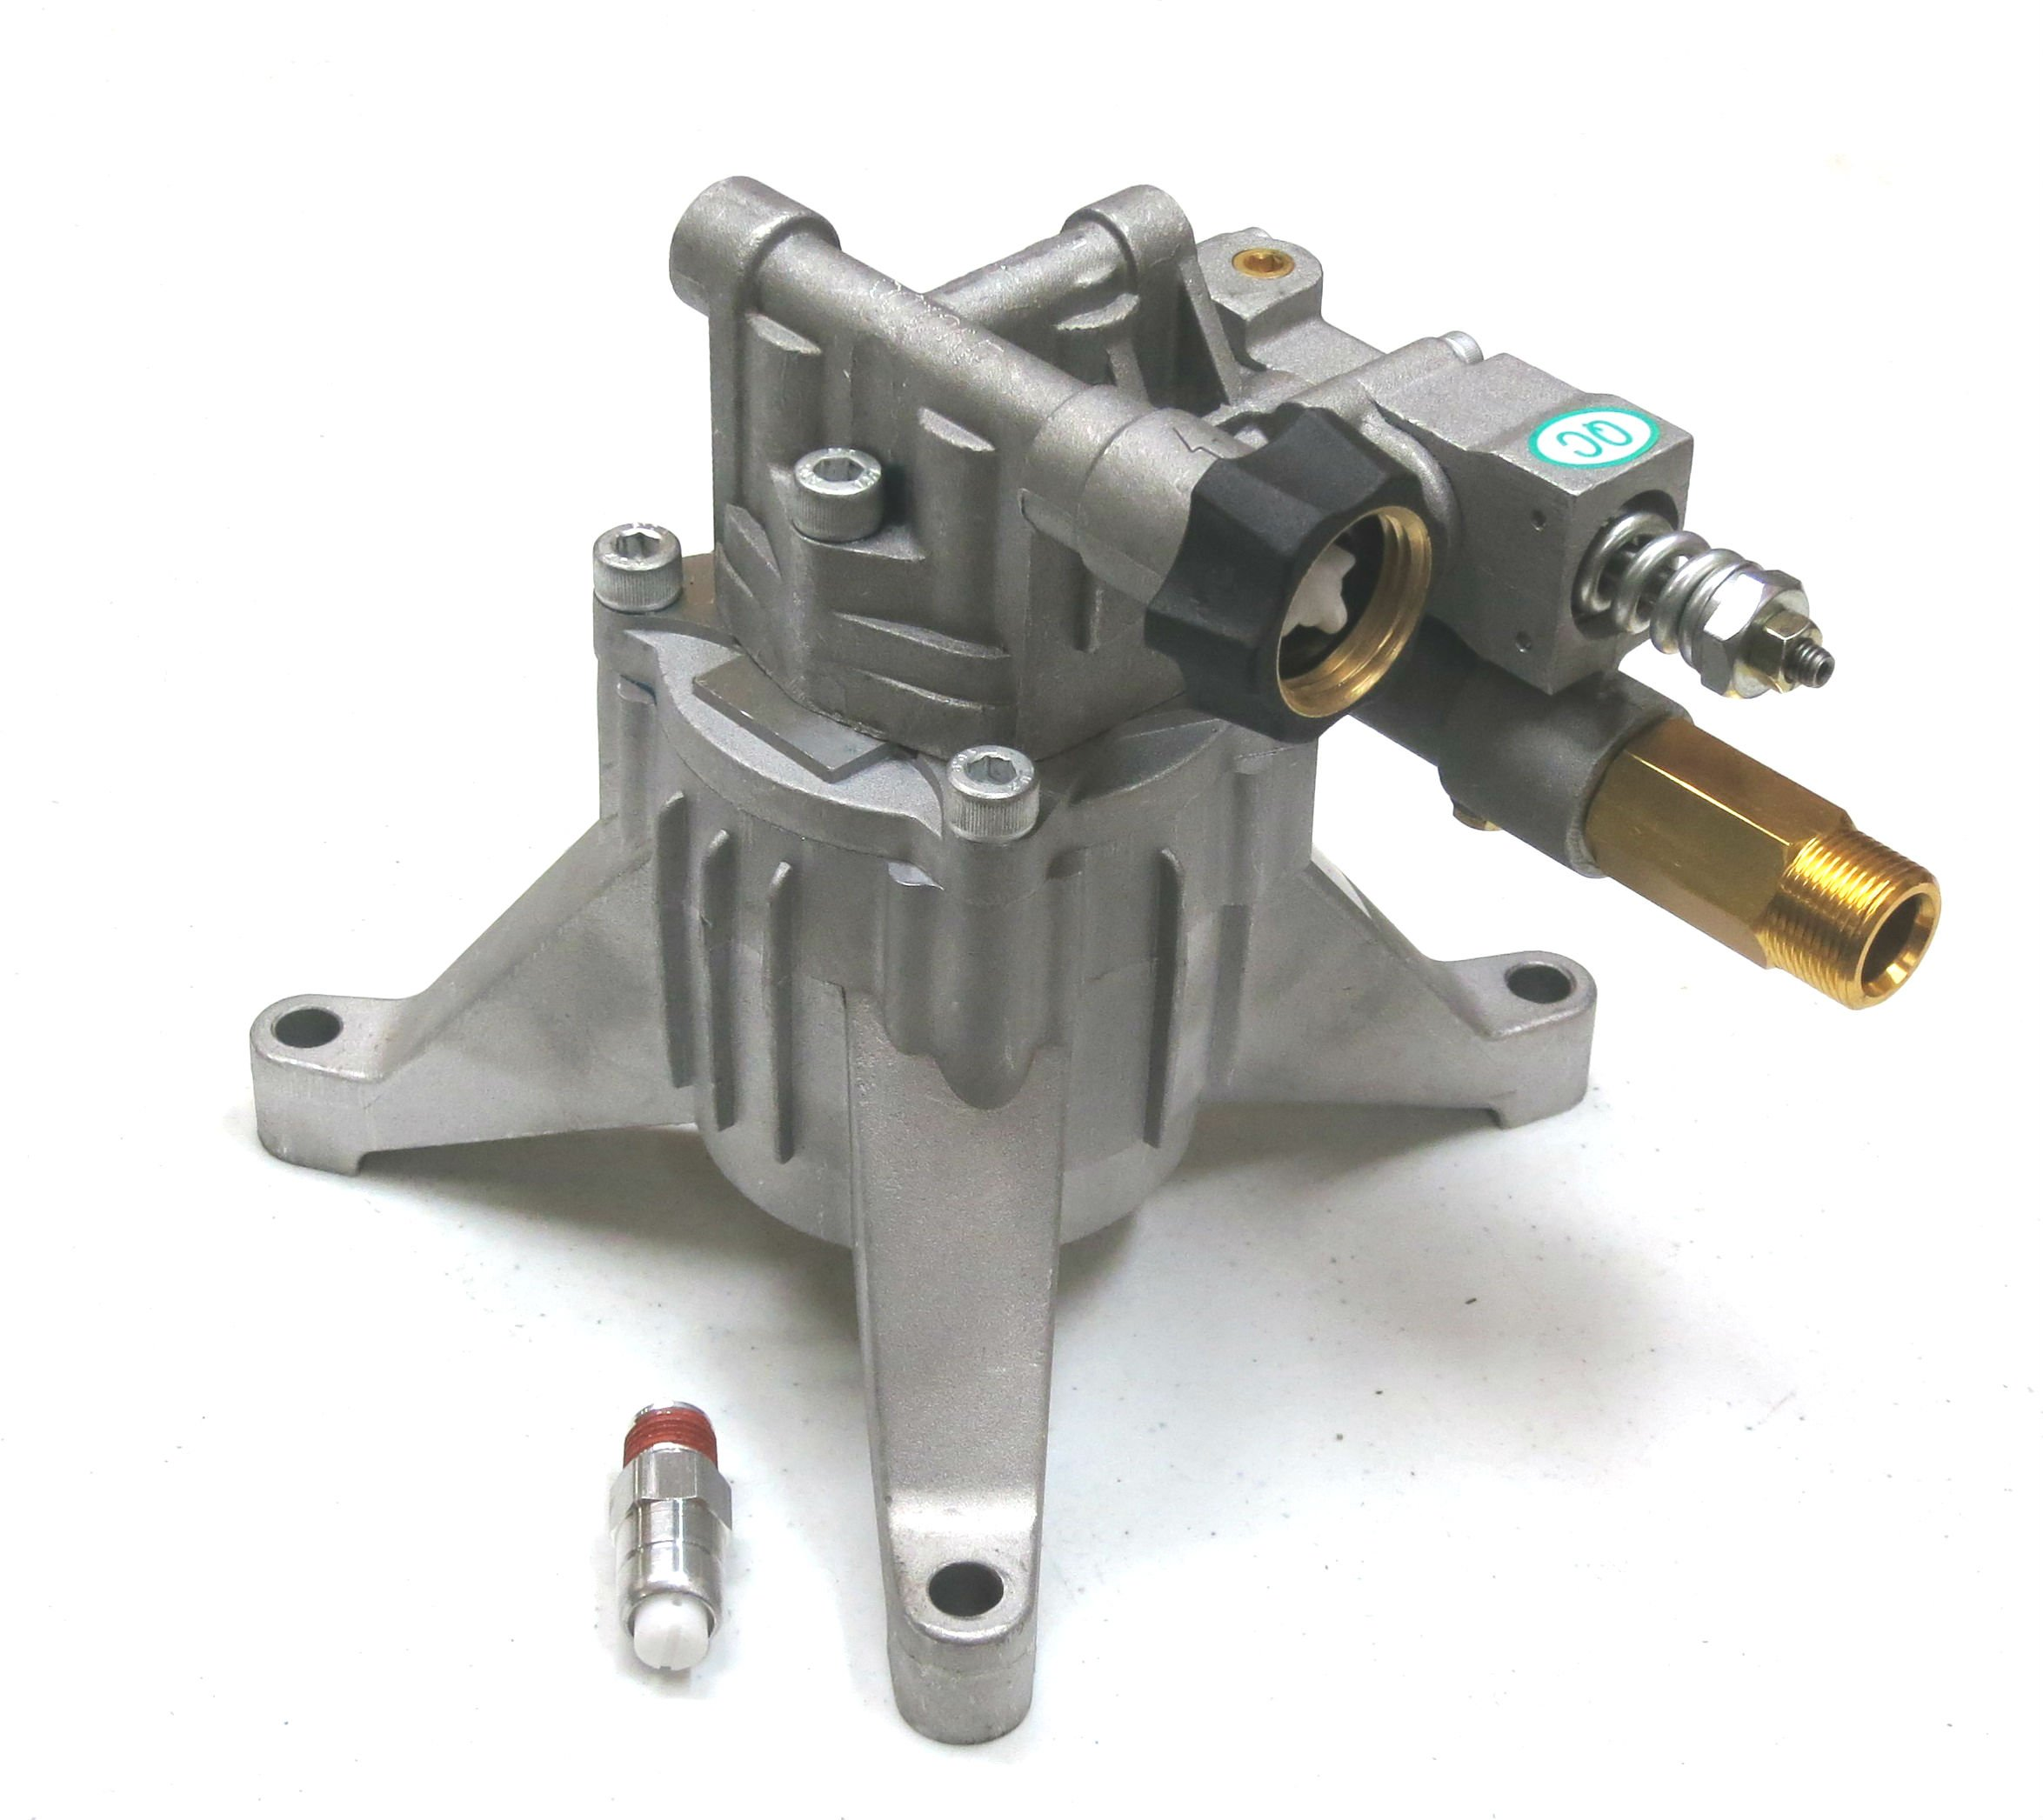 Homelite Universal POWER PRESSURE WASHER WATER PUMP 2800 psi 2.5 gpm fits MANY MODELS 308653052 by Homelite